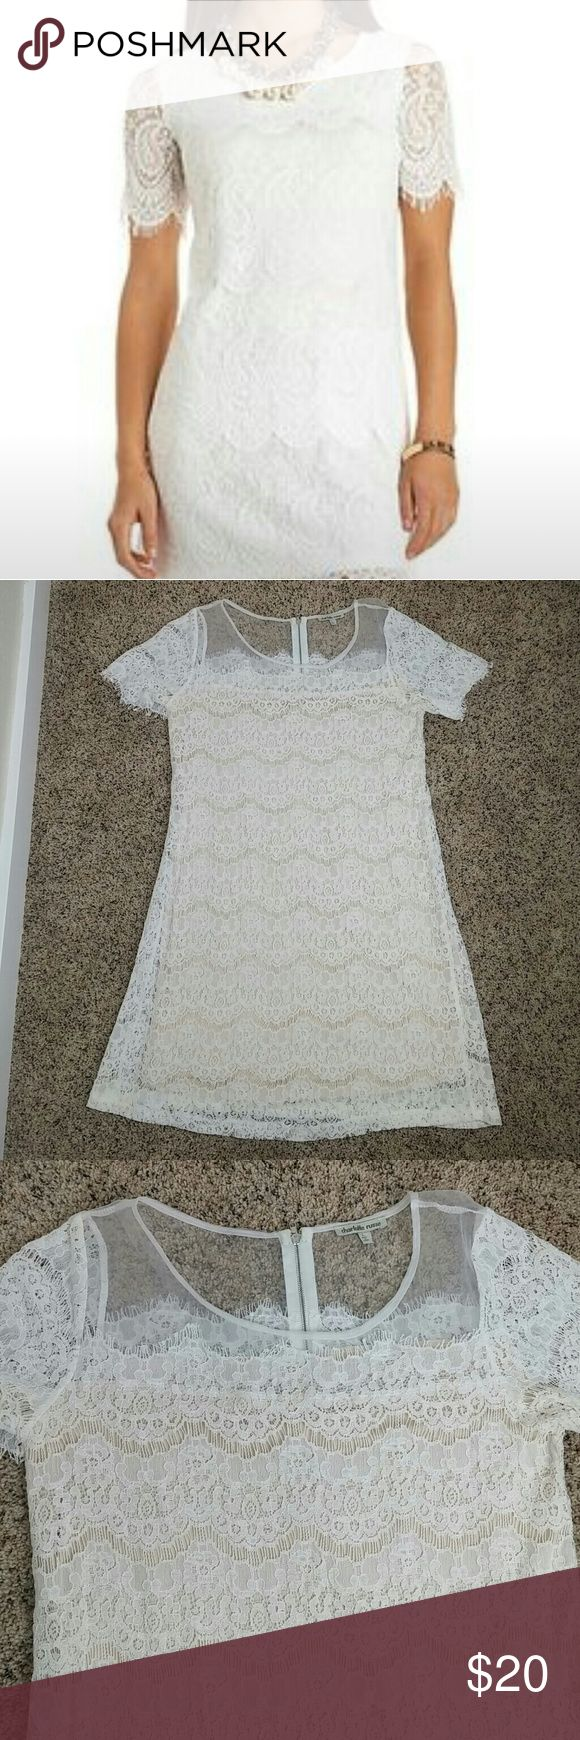 NWOT dress lace white nude New with out tags. White with nude slipper under. Super cute sleeves. Lace with see thru white mesh on top. Charlotte Russe Dresses Mini